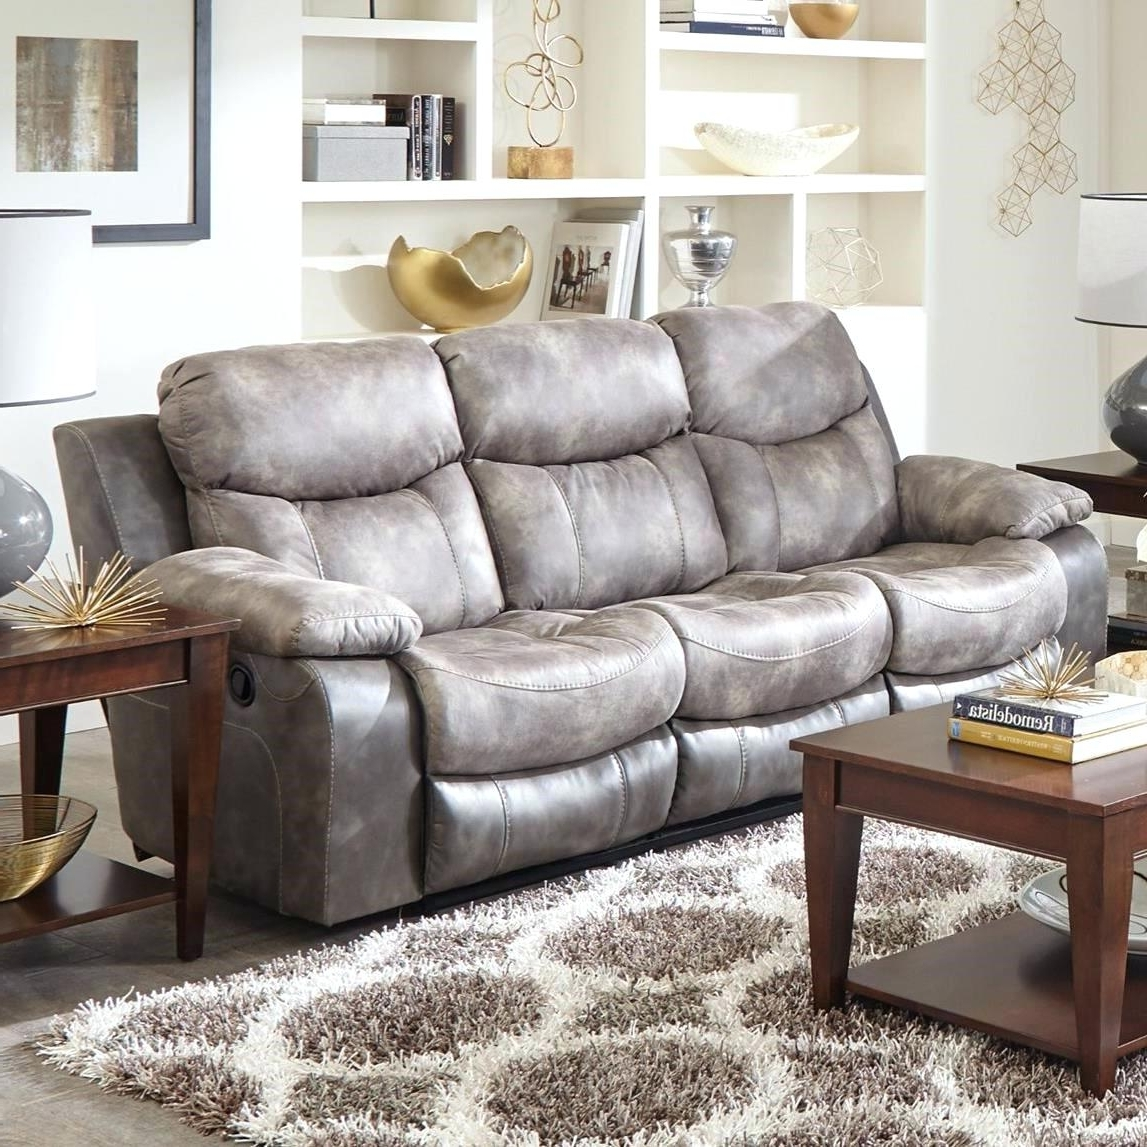 Newest Catnapper Voyager Reclining Sofa Reviews Portman Nolan Power With Regard To Jackpot Reclining Chaises (View 10 of 15)